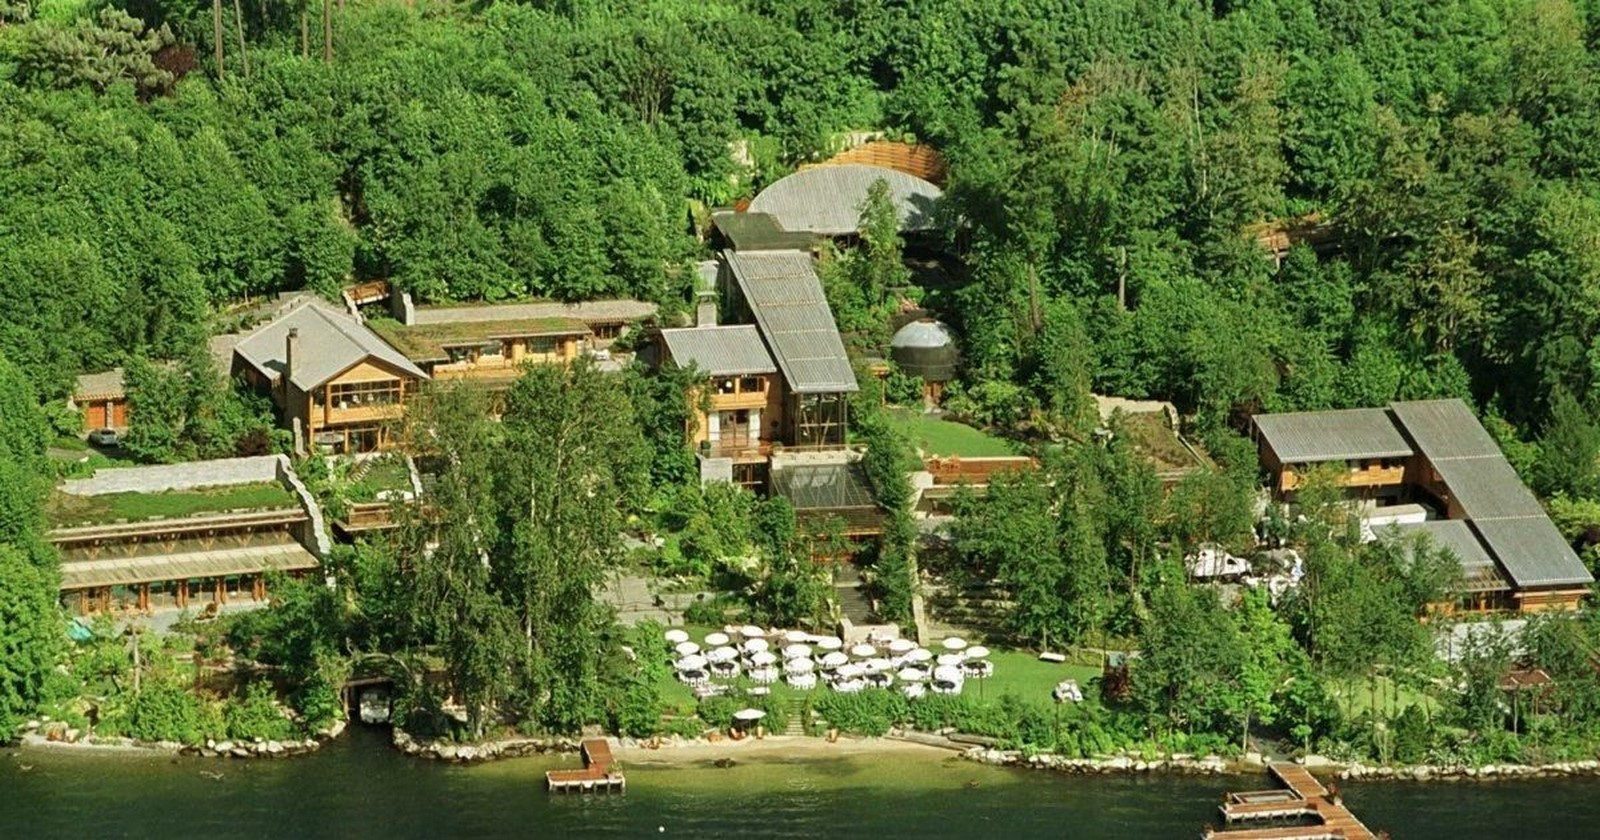 20 Facts about Bill Gates House you should know - Sheet6